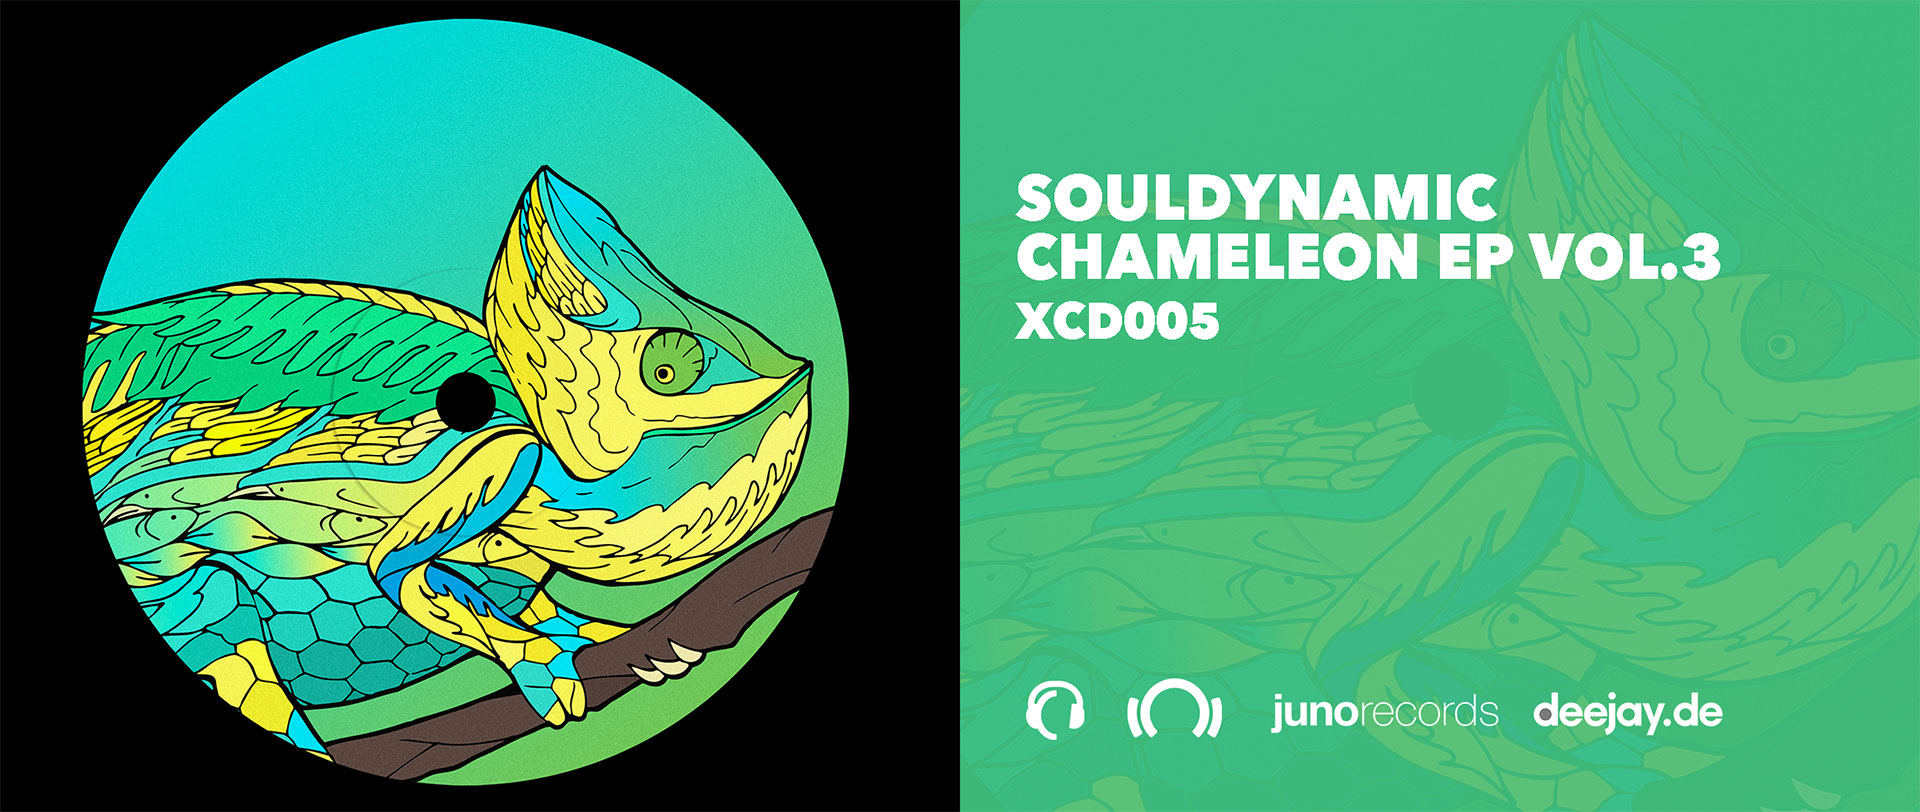 Chameleon EP Vol.3 OUT NOW!